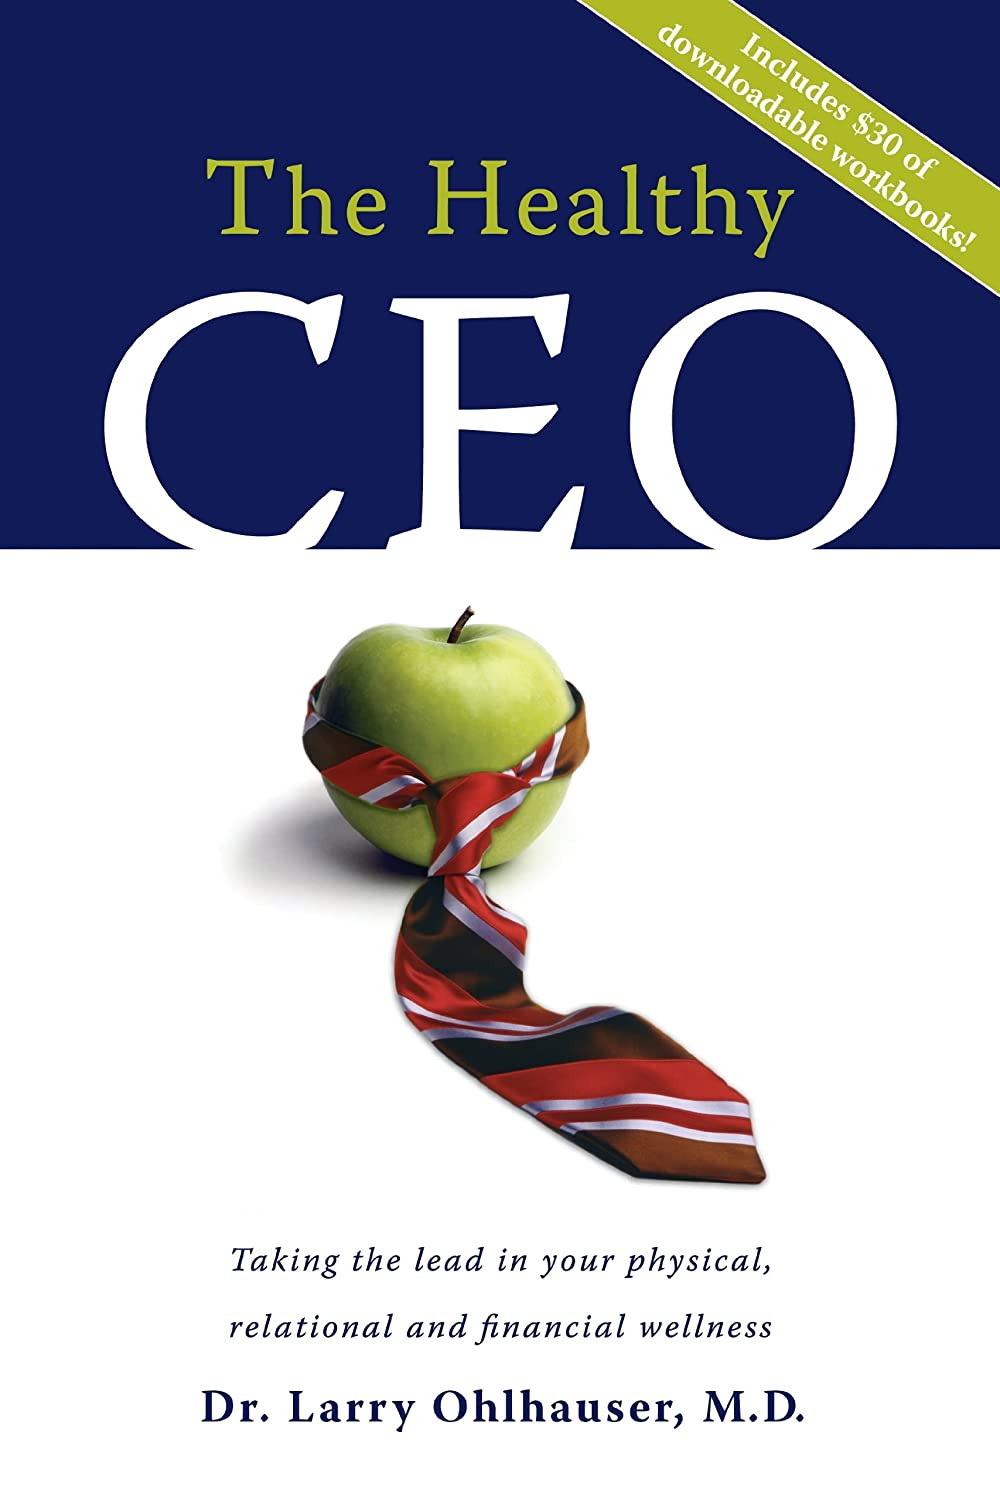 The Healthy CEO